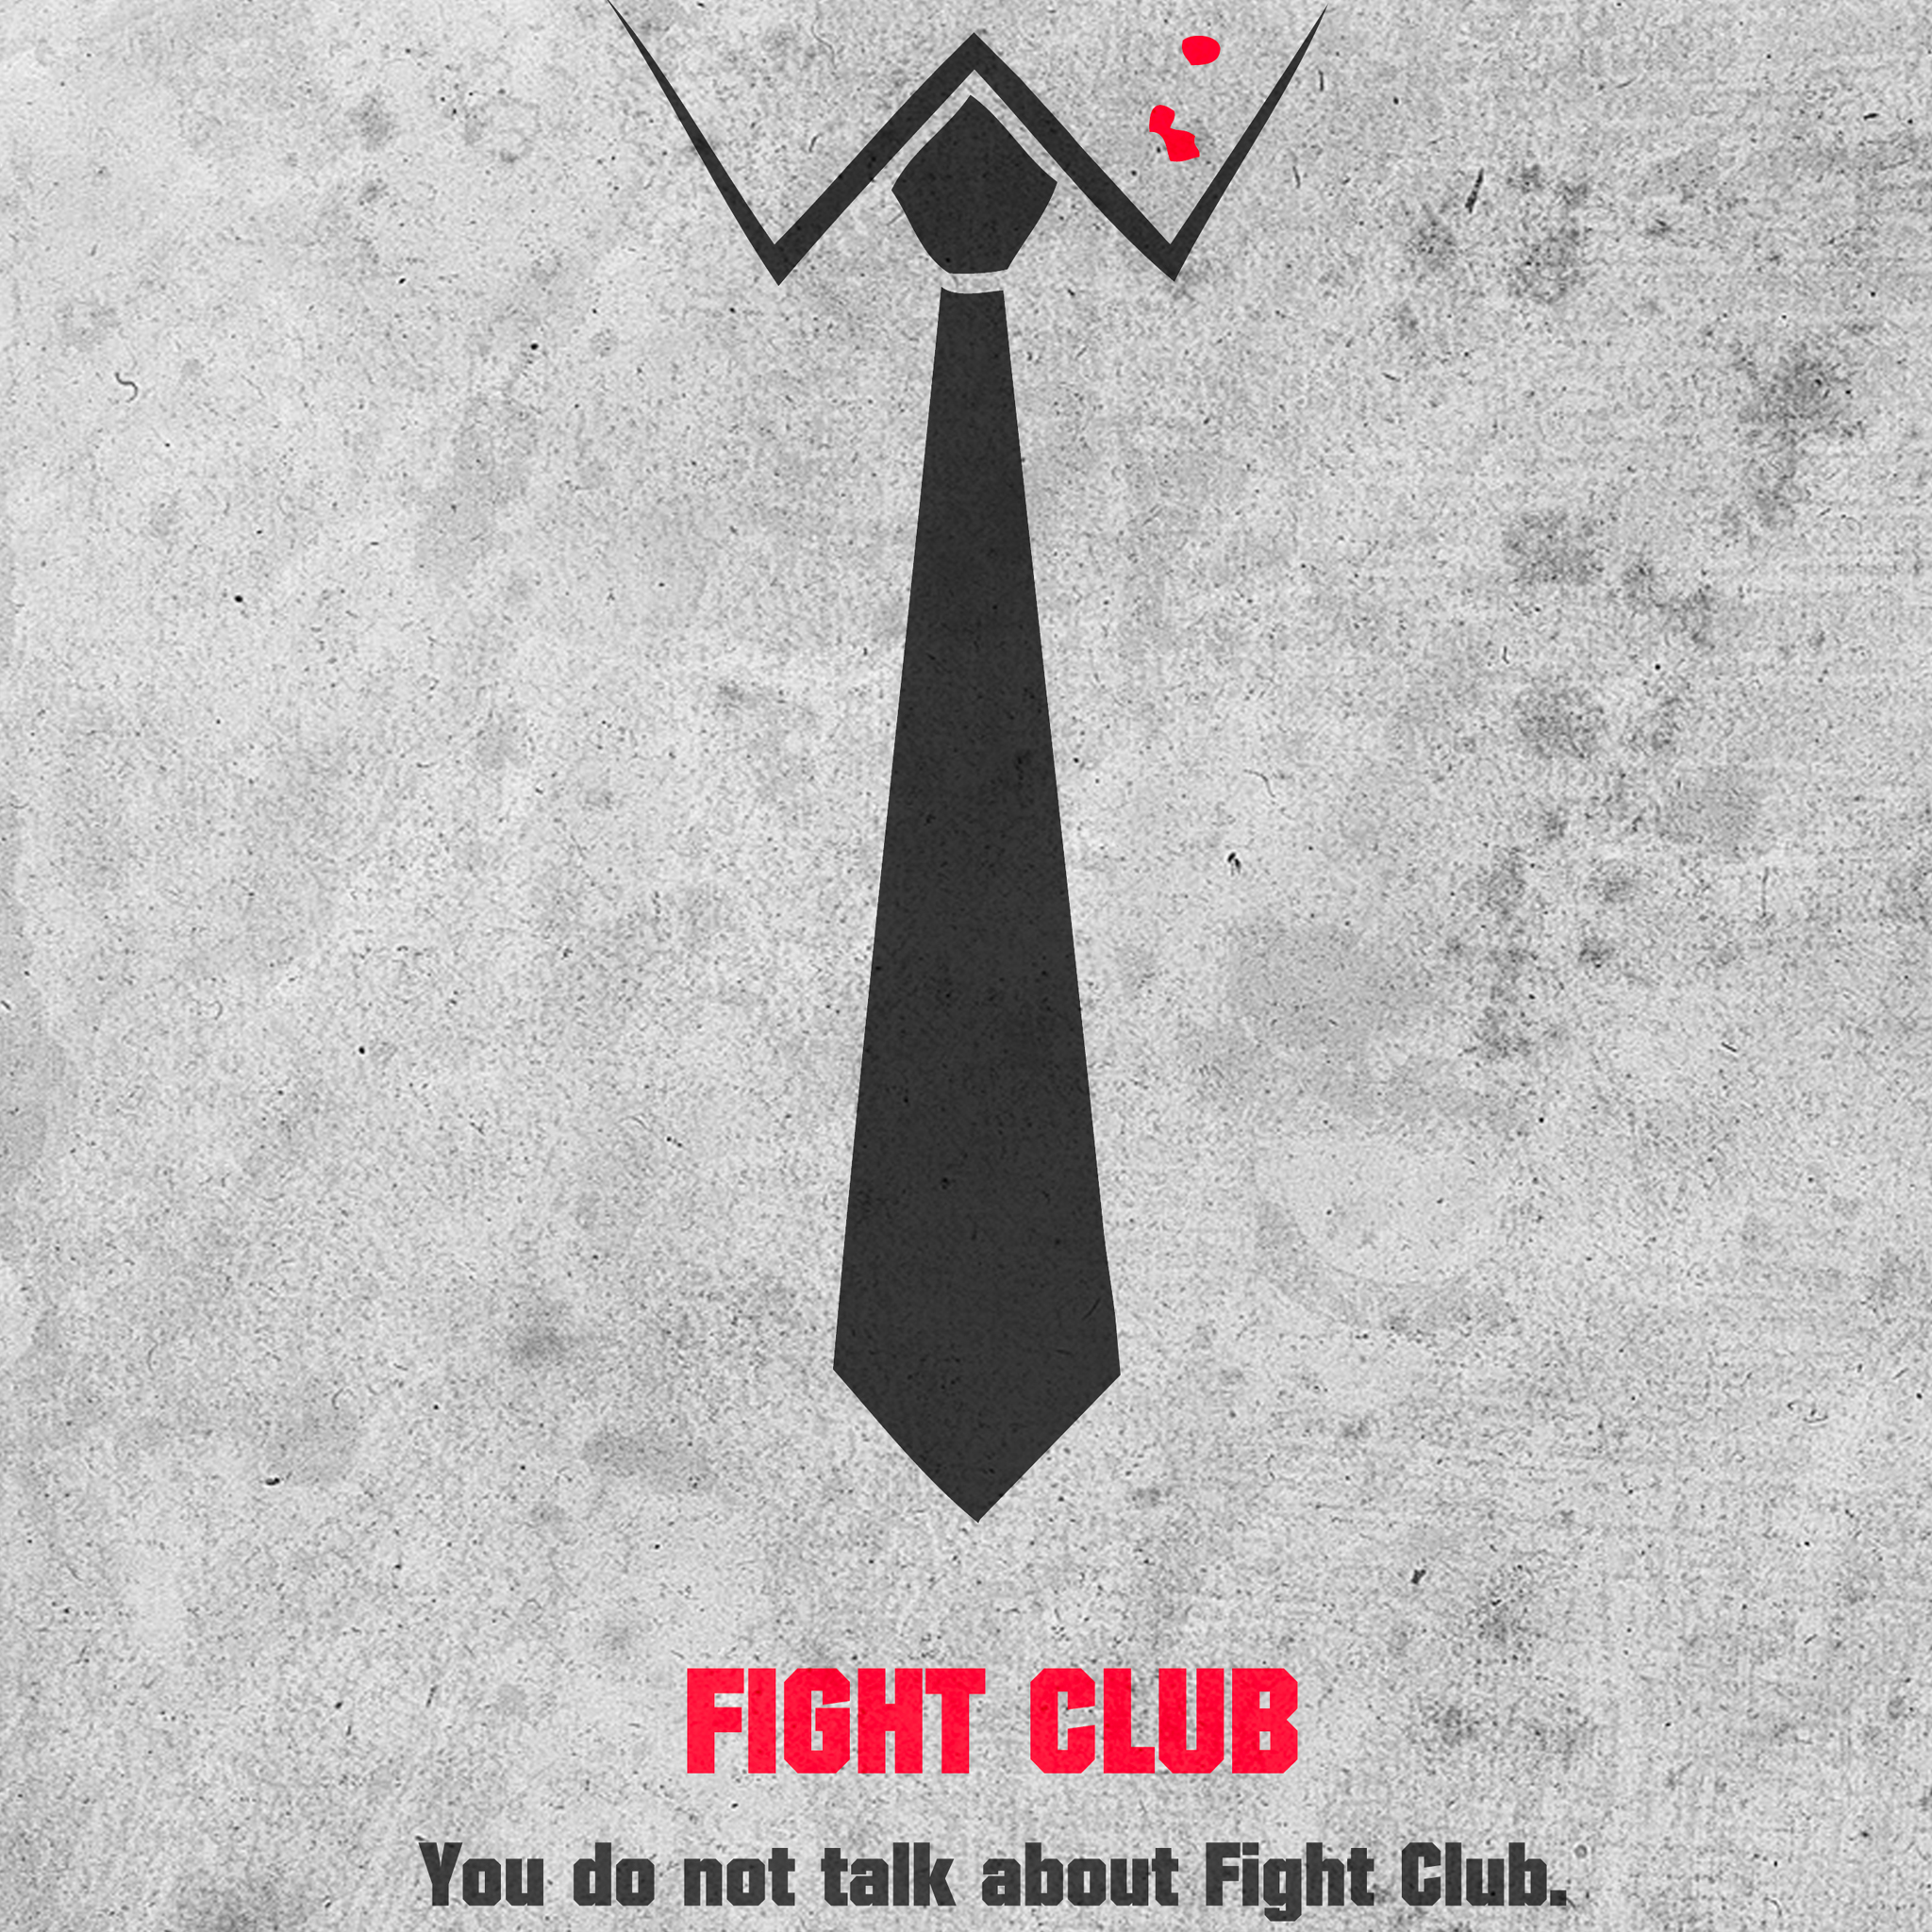 FightClub 3W IPad Fight Club By Vbabic